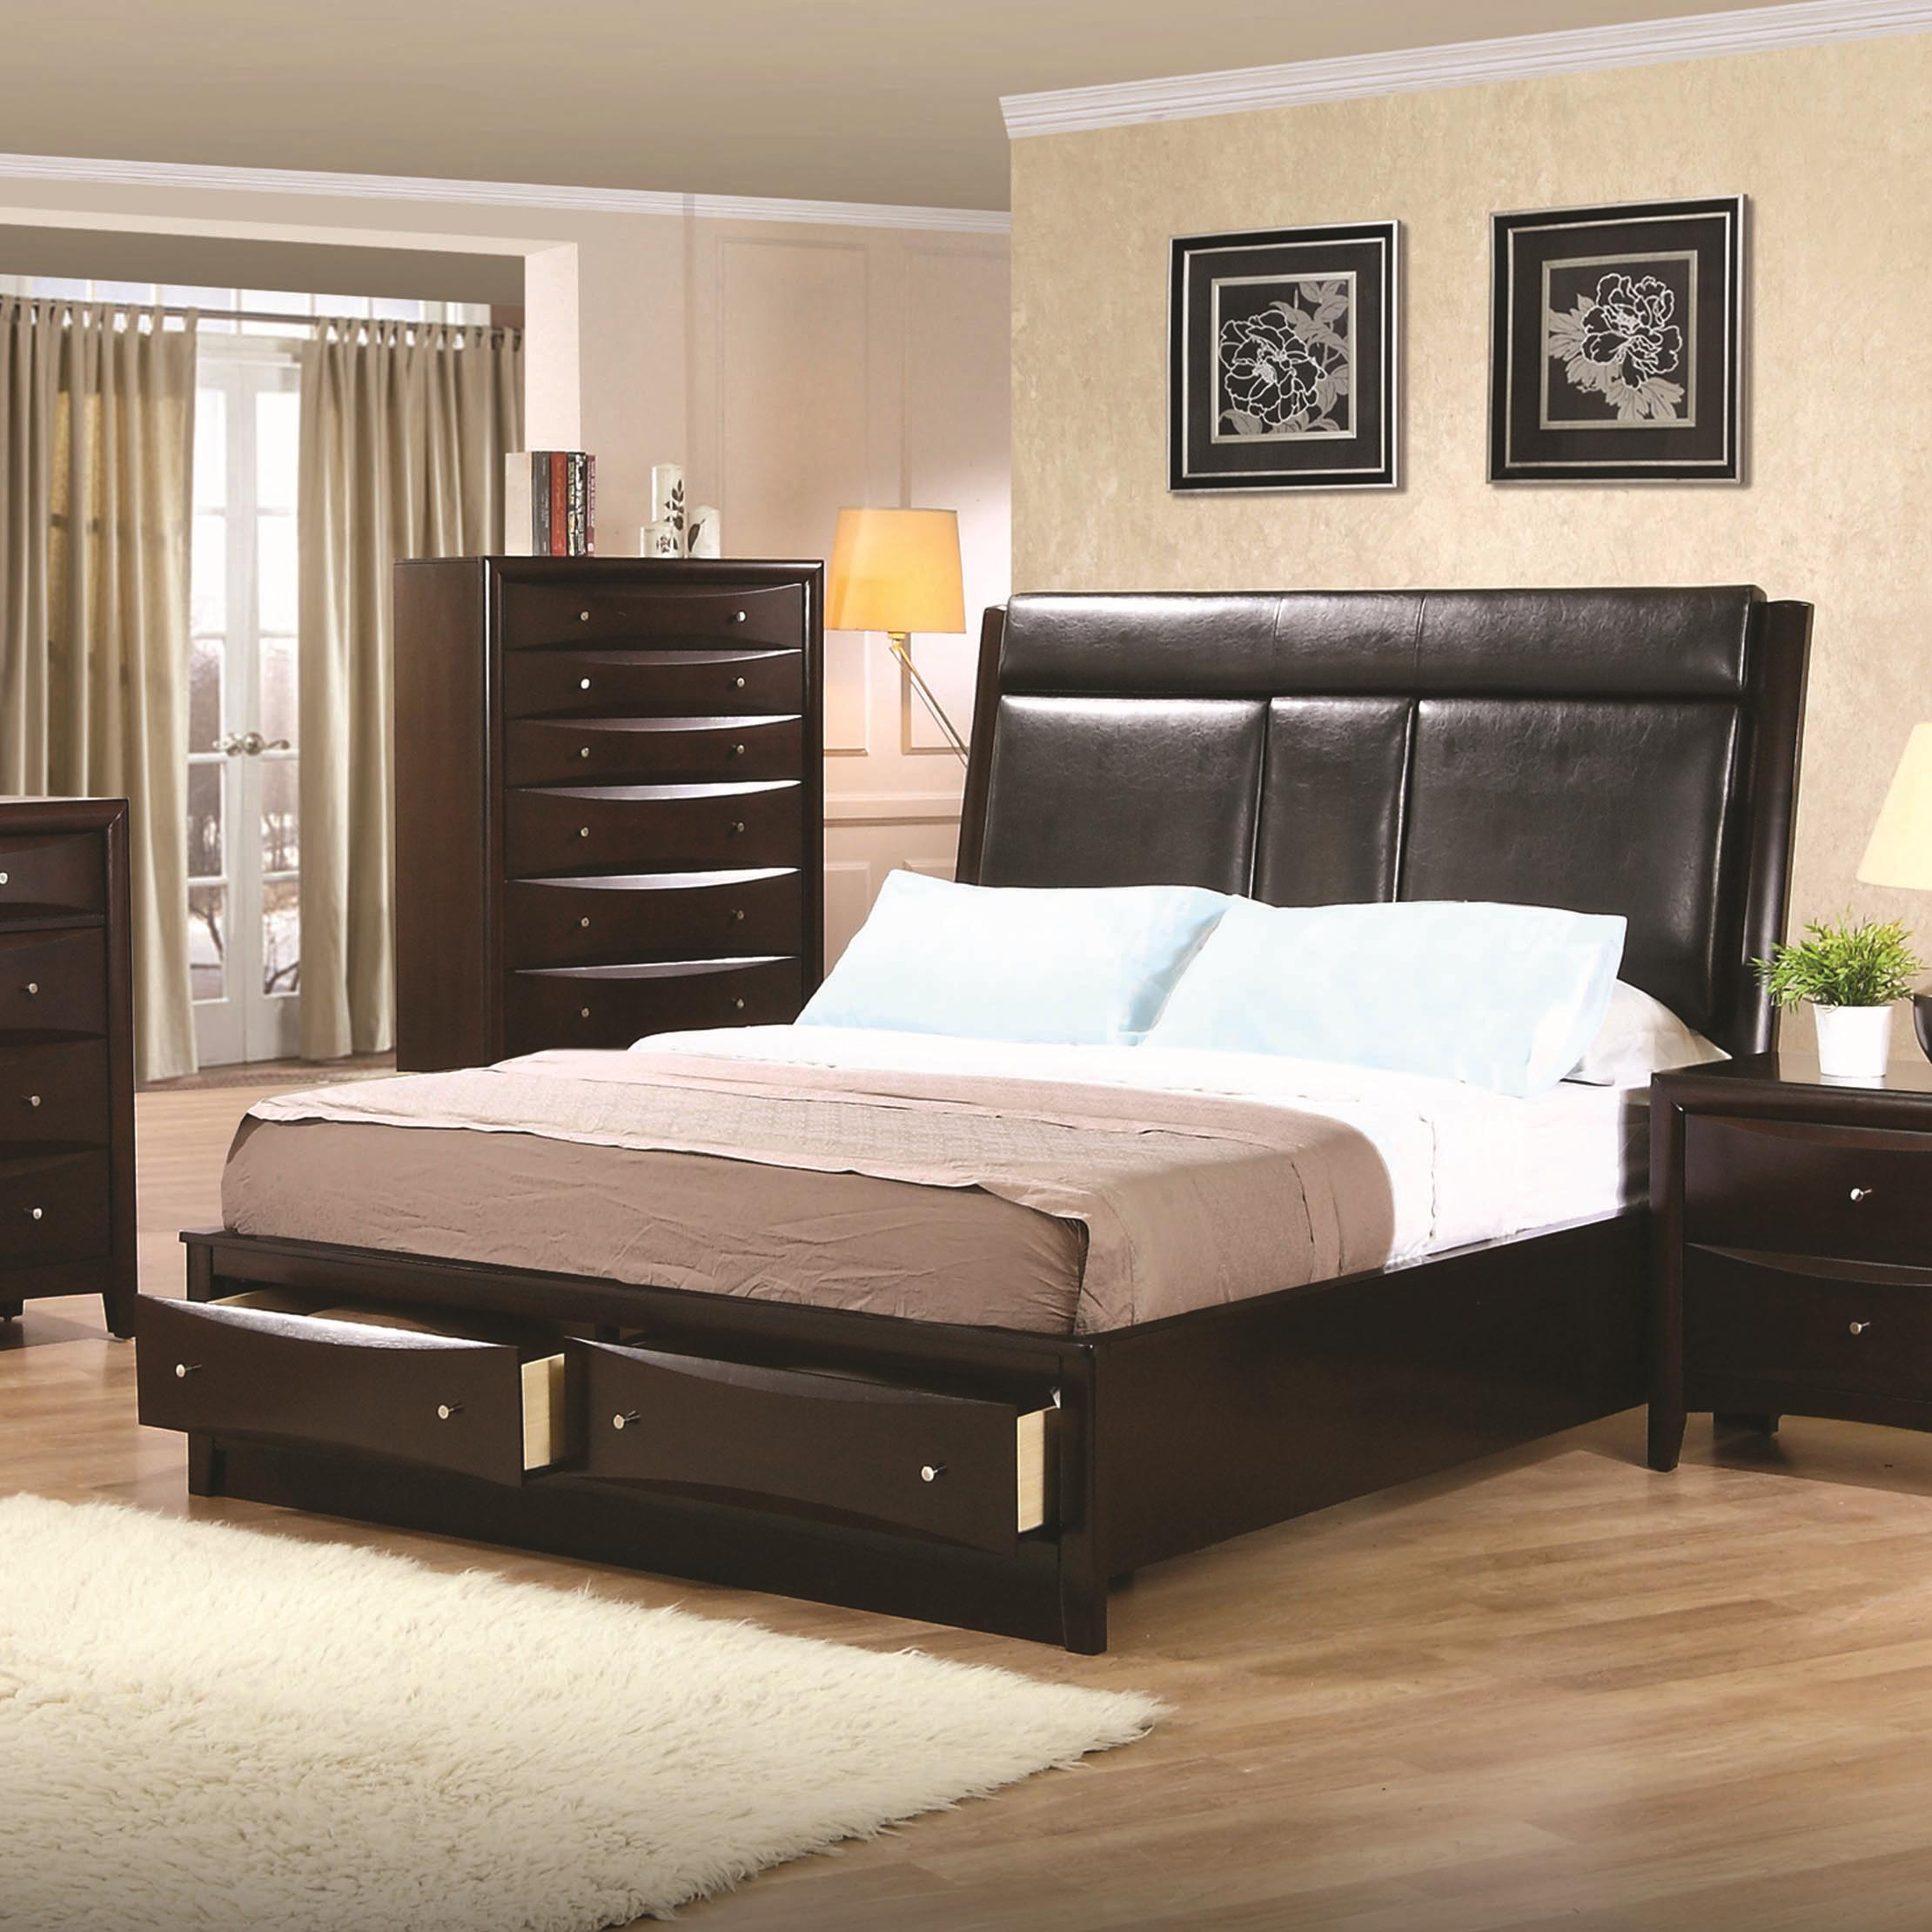 Coaster Phoenix King Storage Bed - Item Number: 200419KE